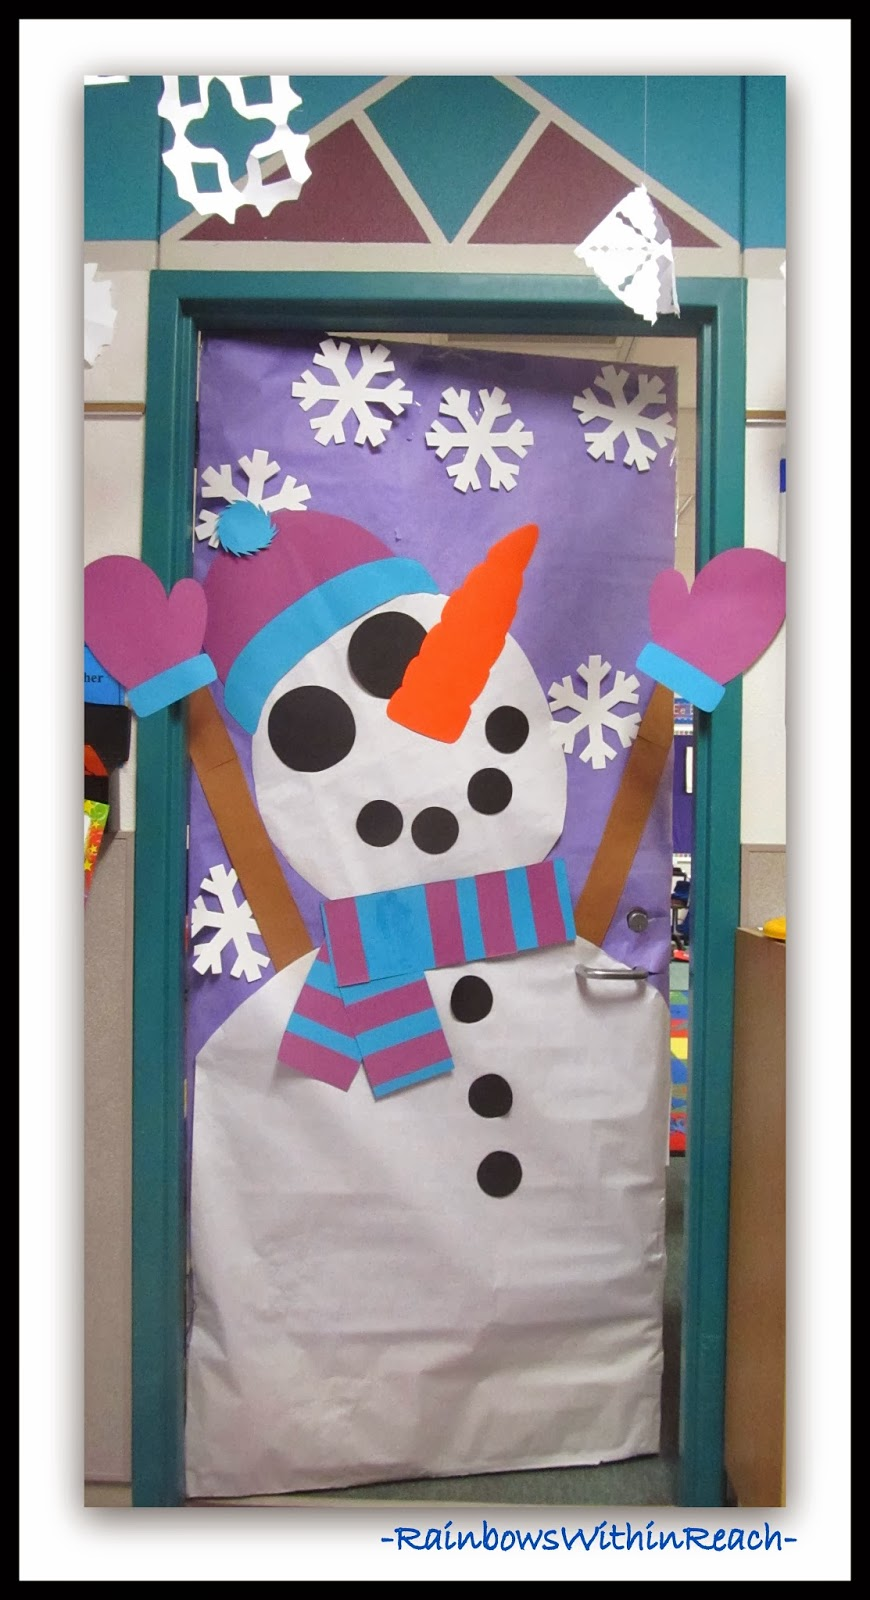 Classroom Door Decoration Ideas For January : Snowman decorated classroom door via rainbowswithinreach